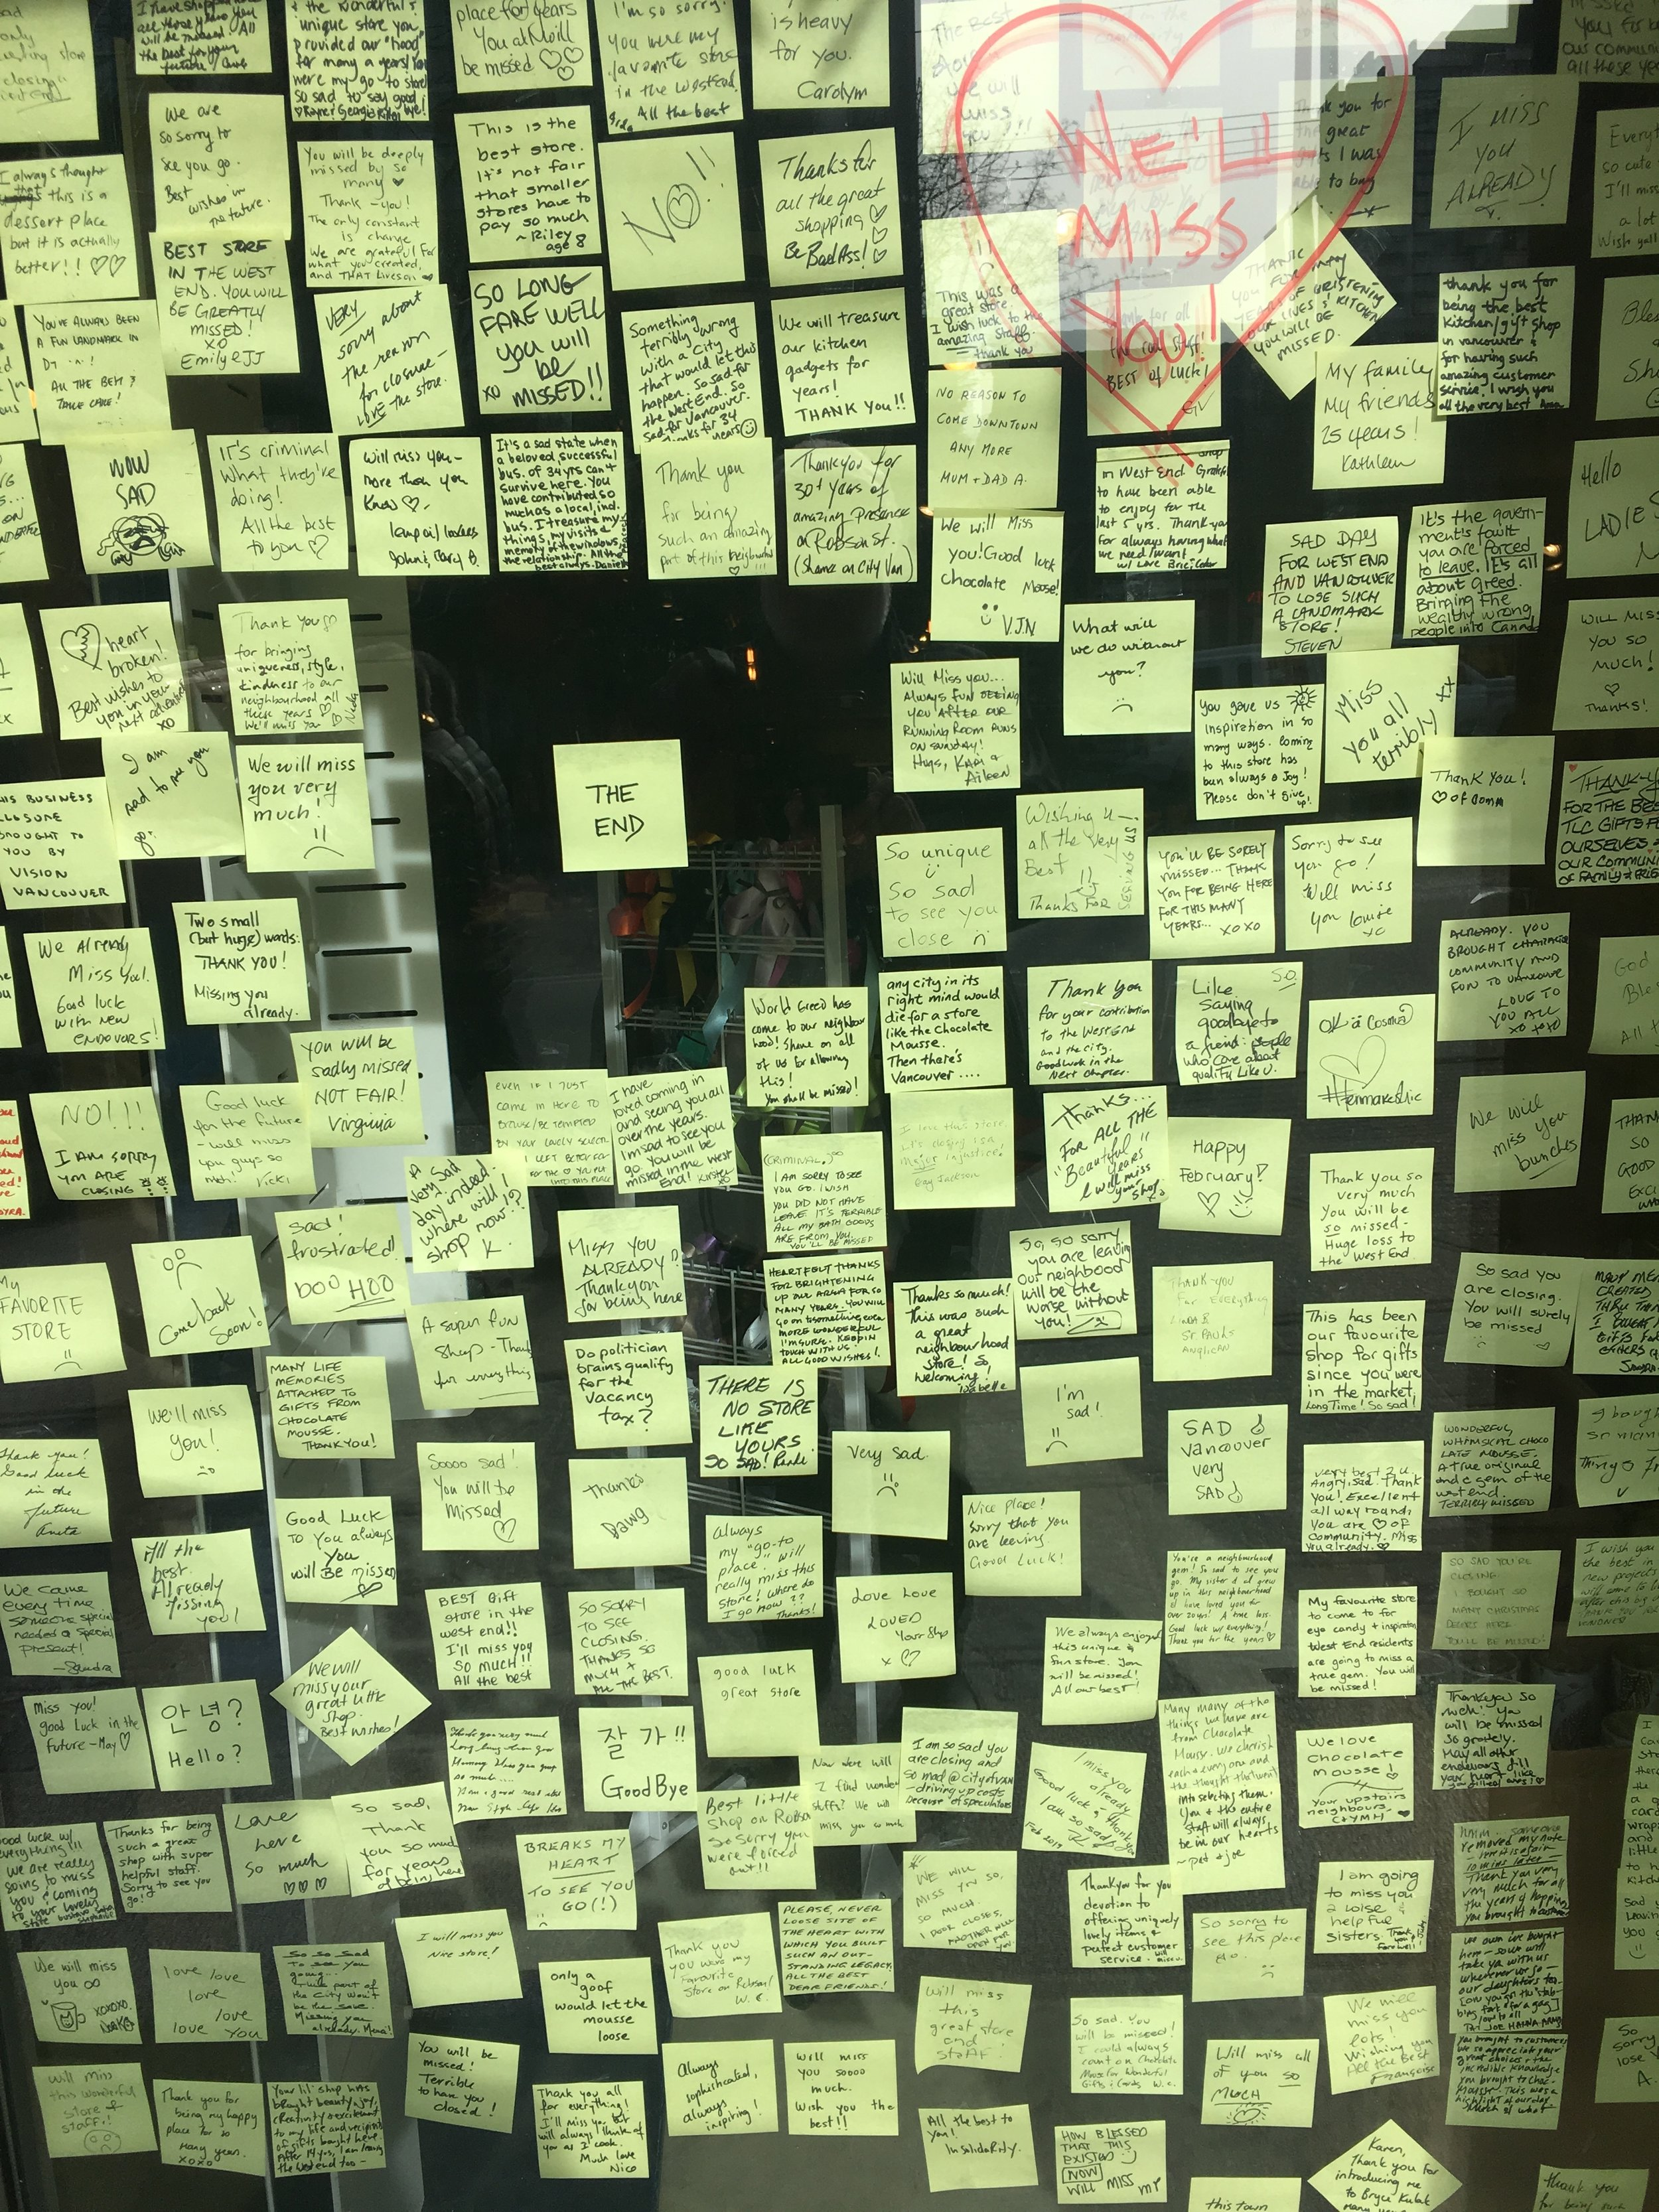 Devoted customers left farewell messages on the window of Chocolate Mousse. Click on image to enlarge.